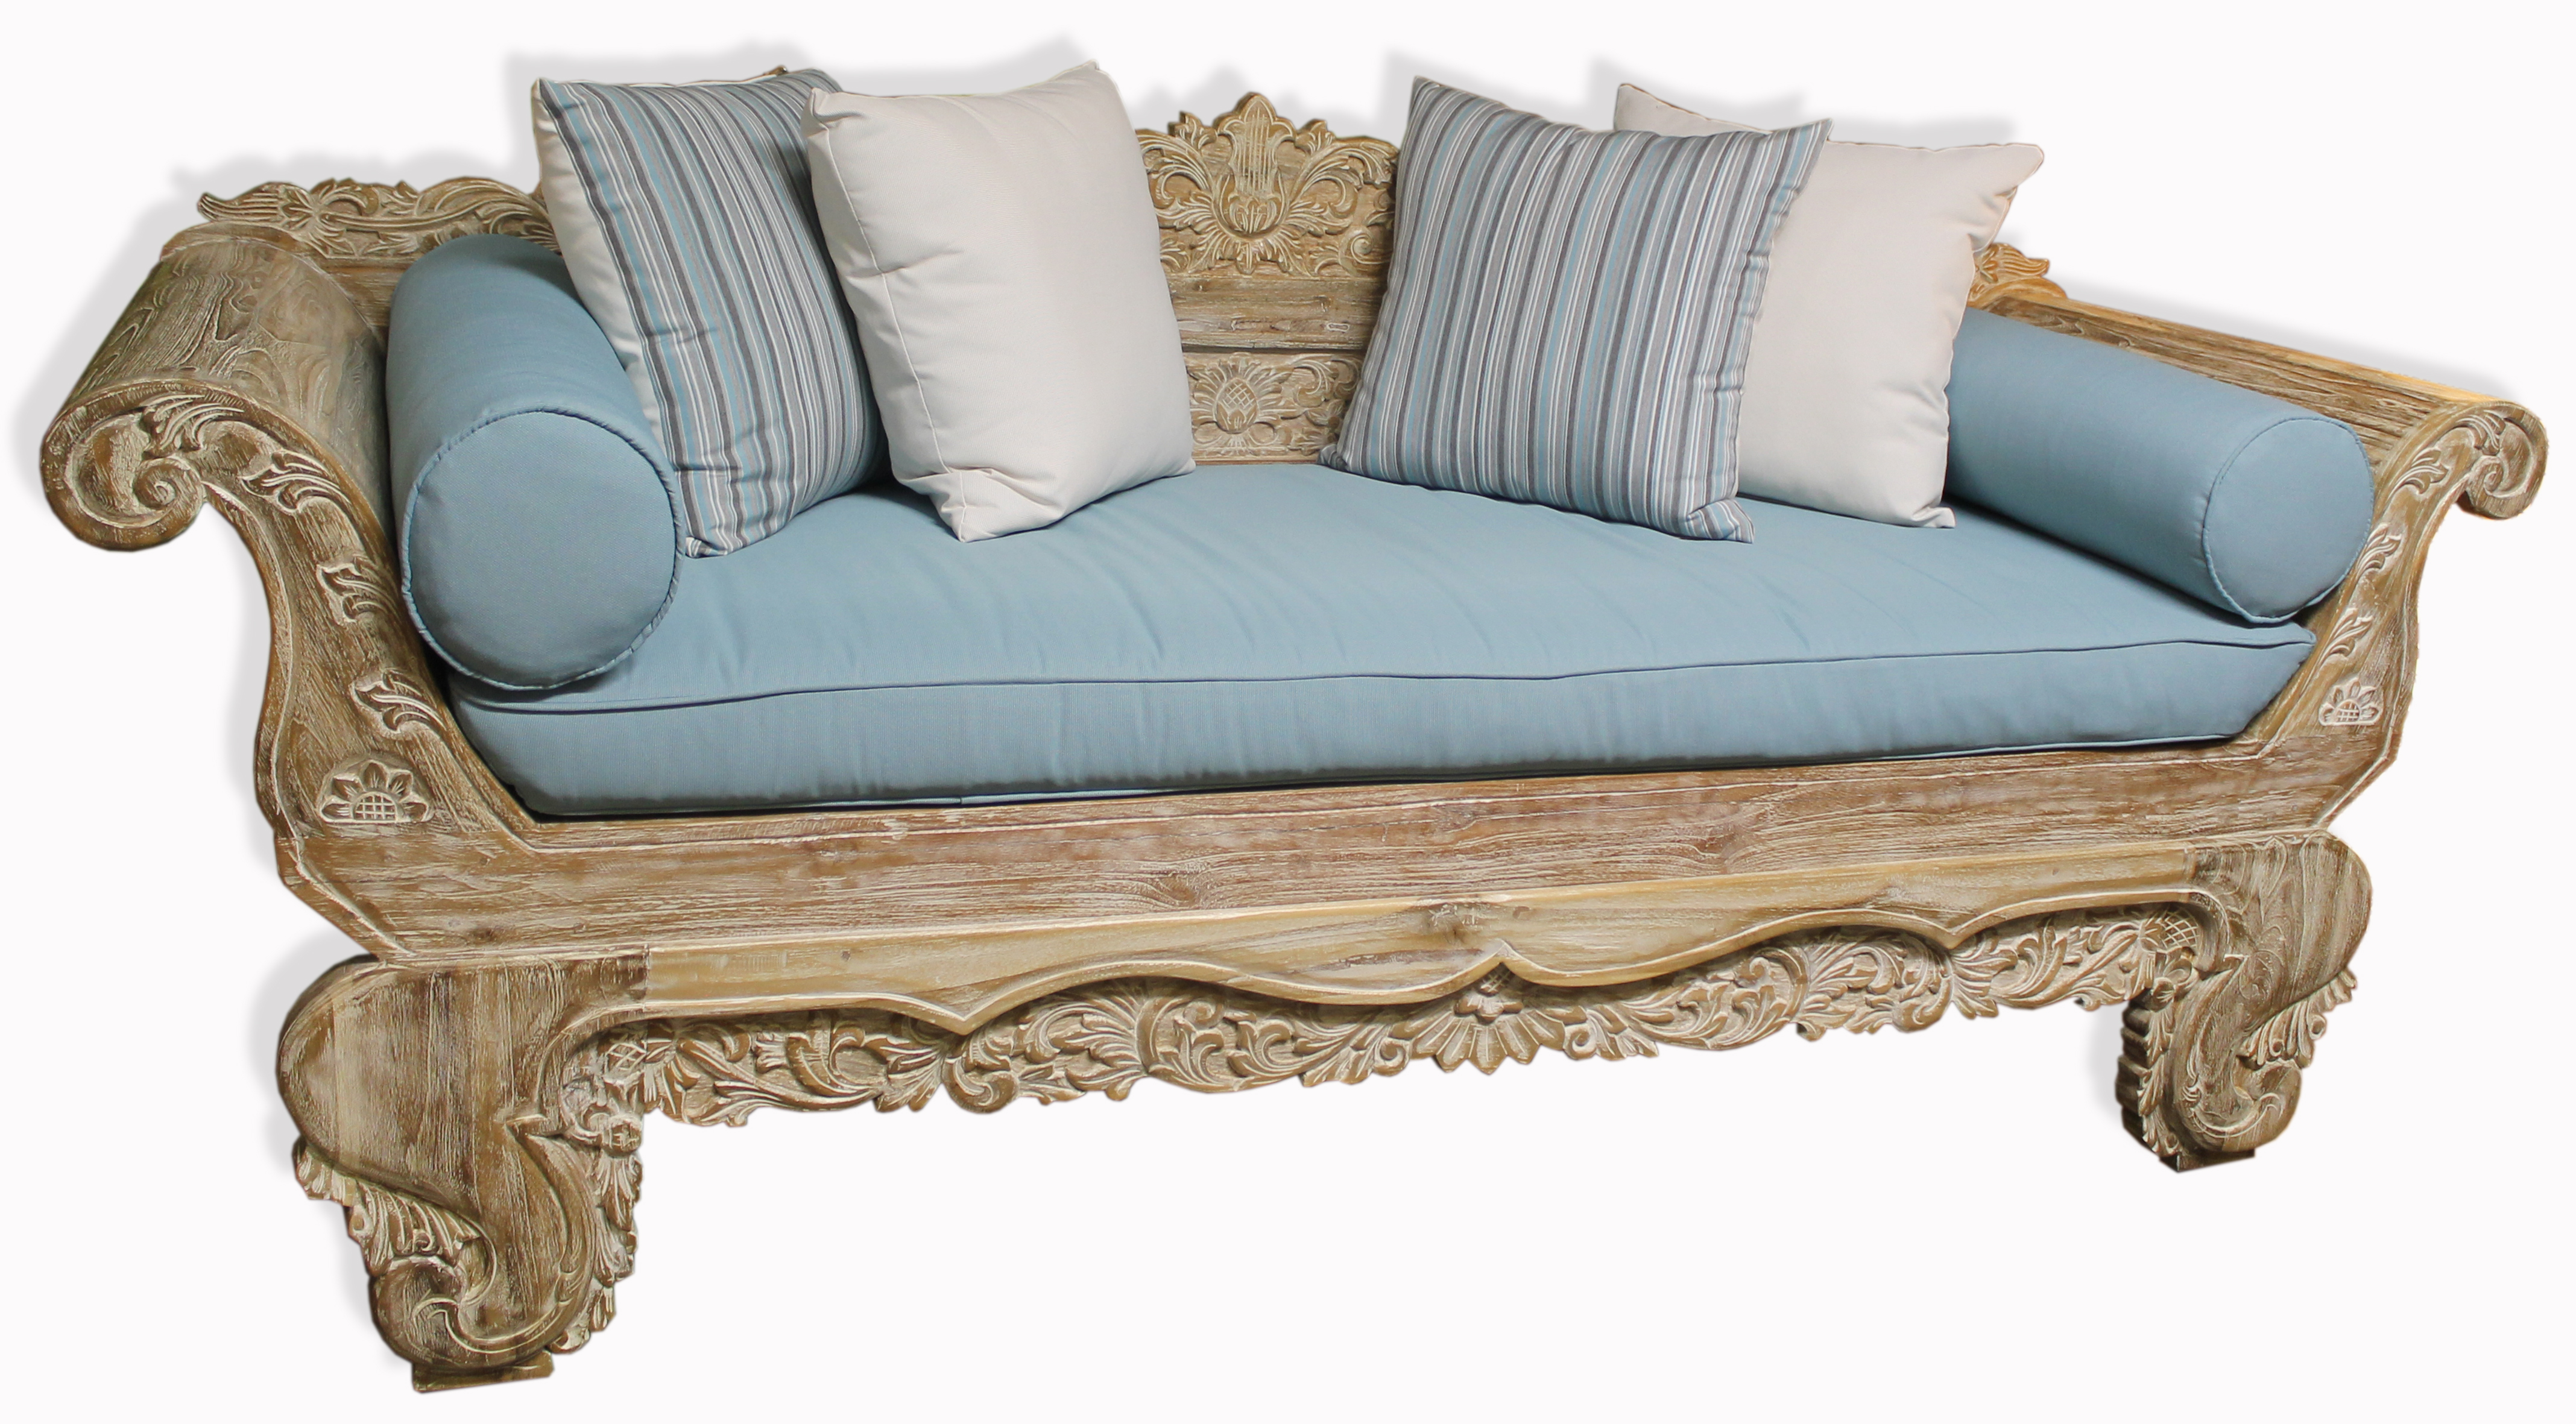 Picture of: Madura Daybed Carved Balinese Daybeds Unique Ranges Ashanti Furniture And Design